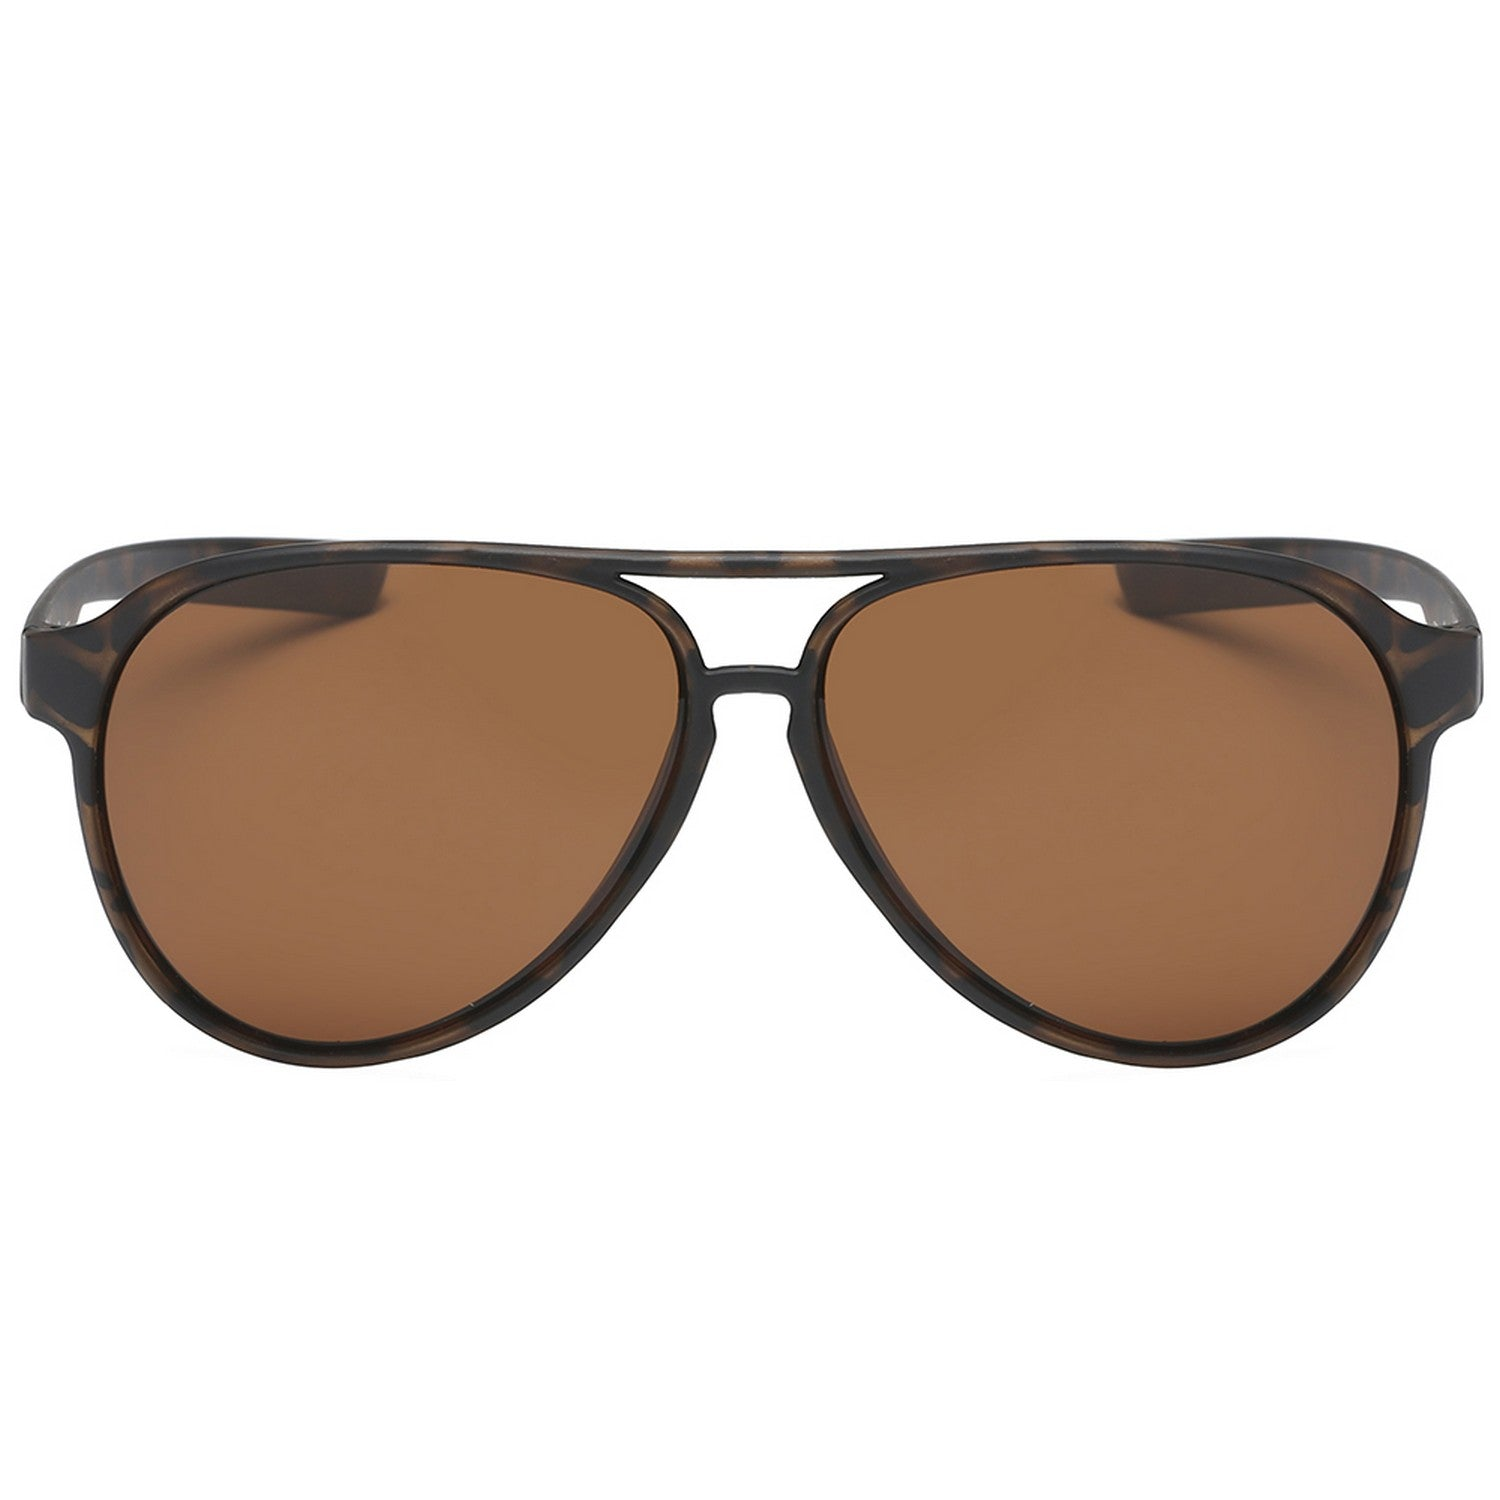 Polarspex Polarized Classic Ultar Lightweight Aviator Pilot Sunglasses with Matte Tortoise Frames and Polarized Brown Lenses for Men and Women